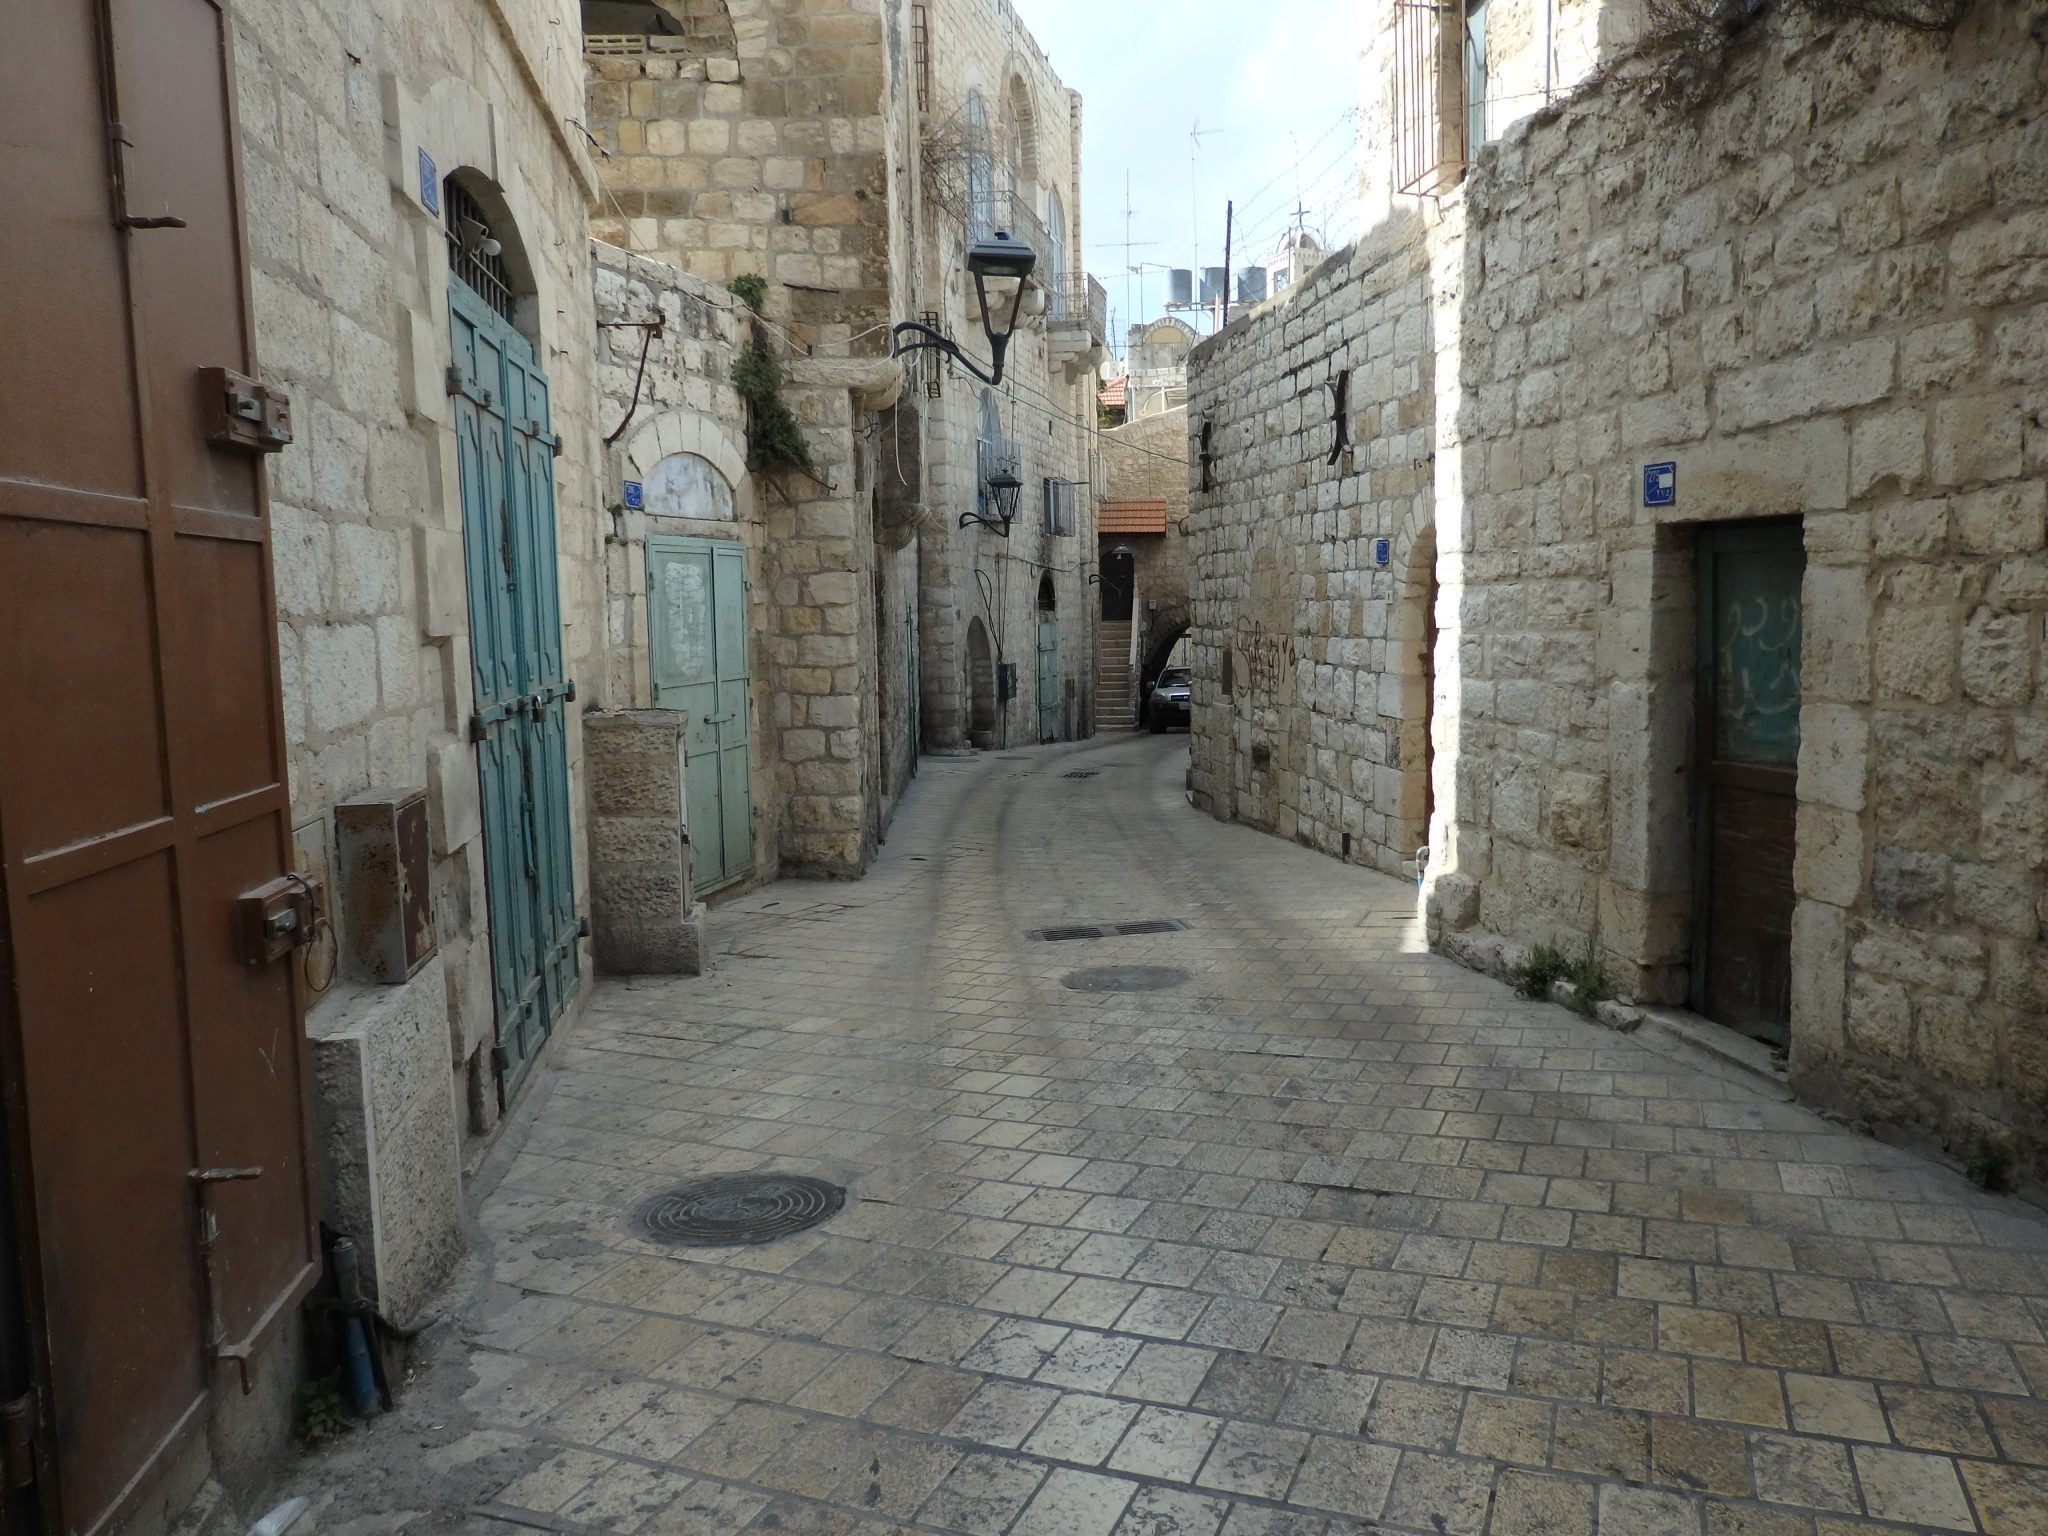 a street in the old part of Bethlehem